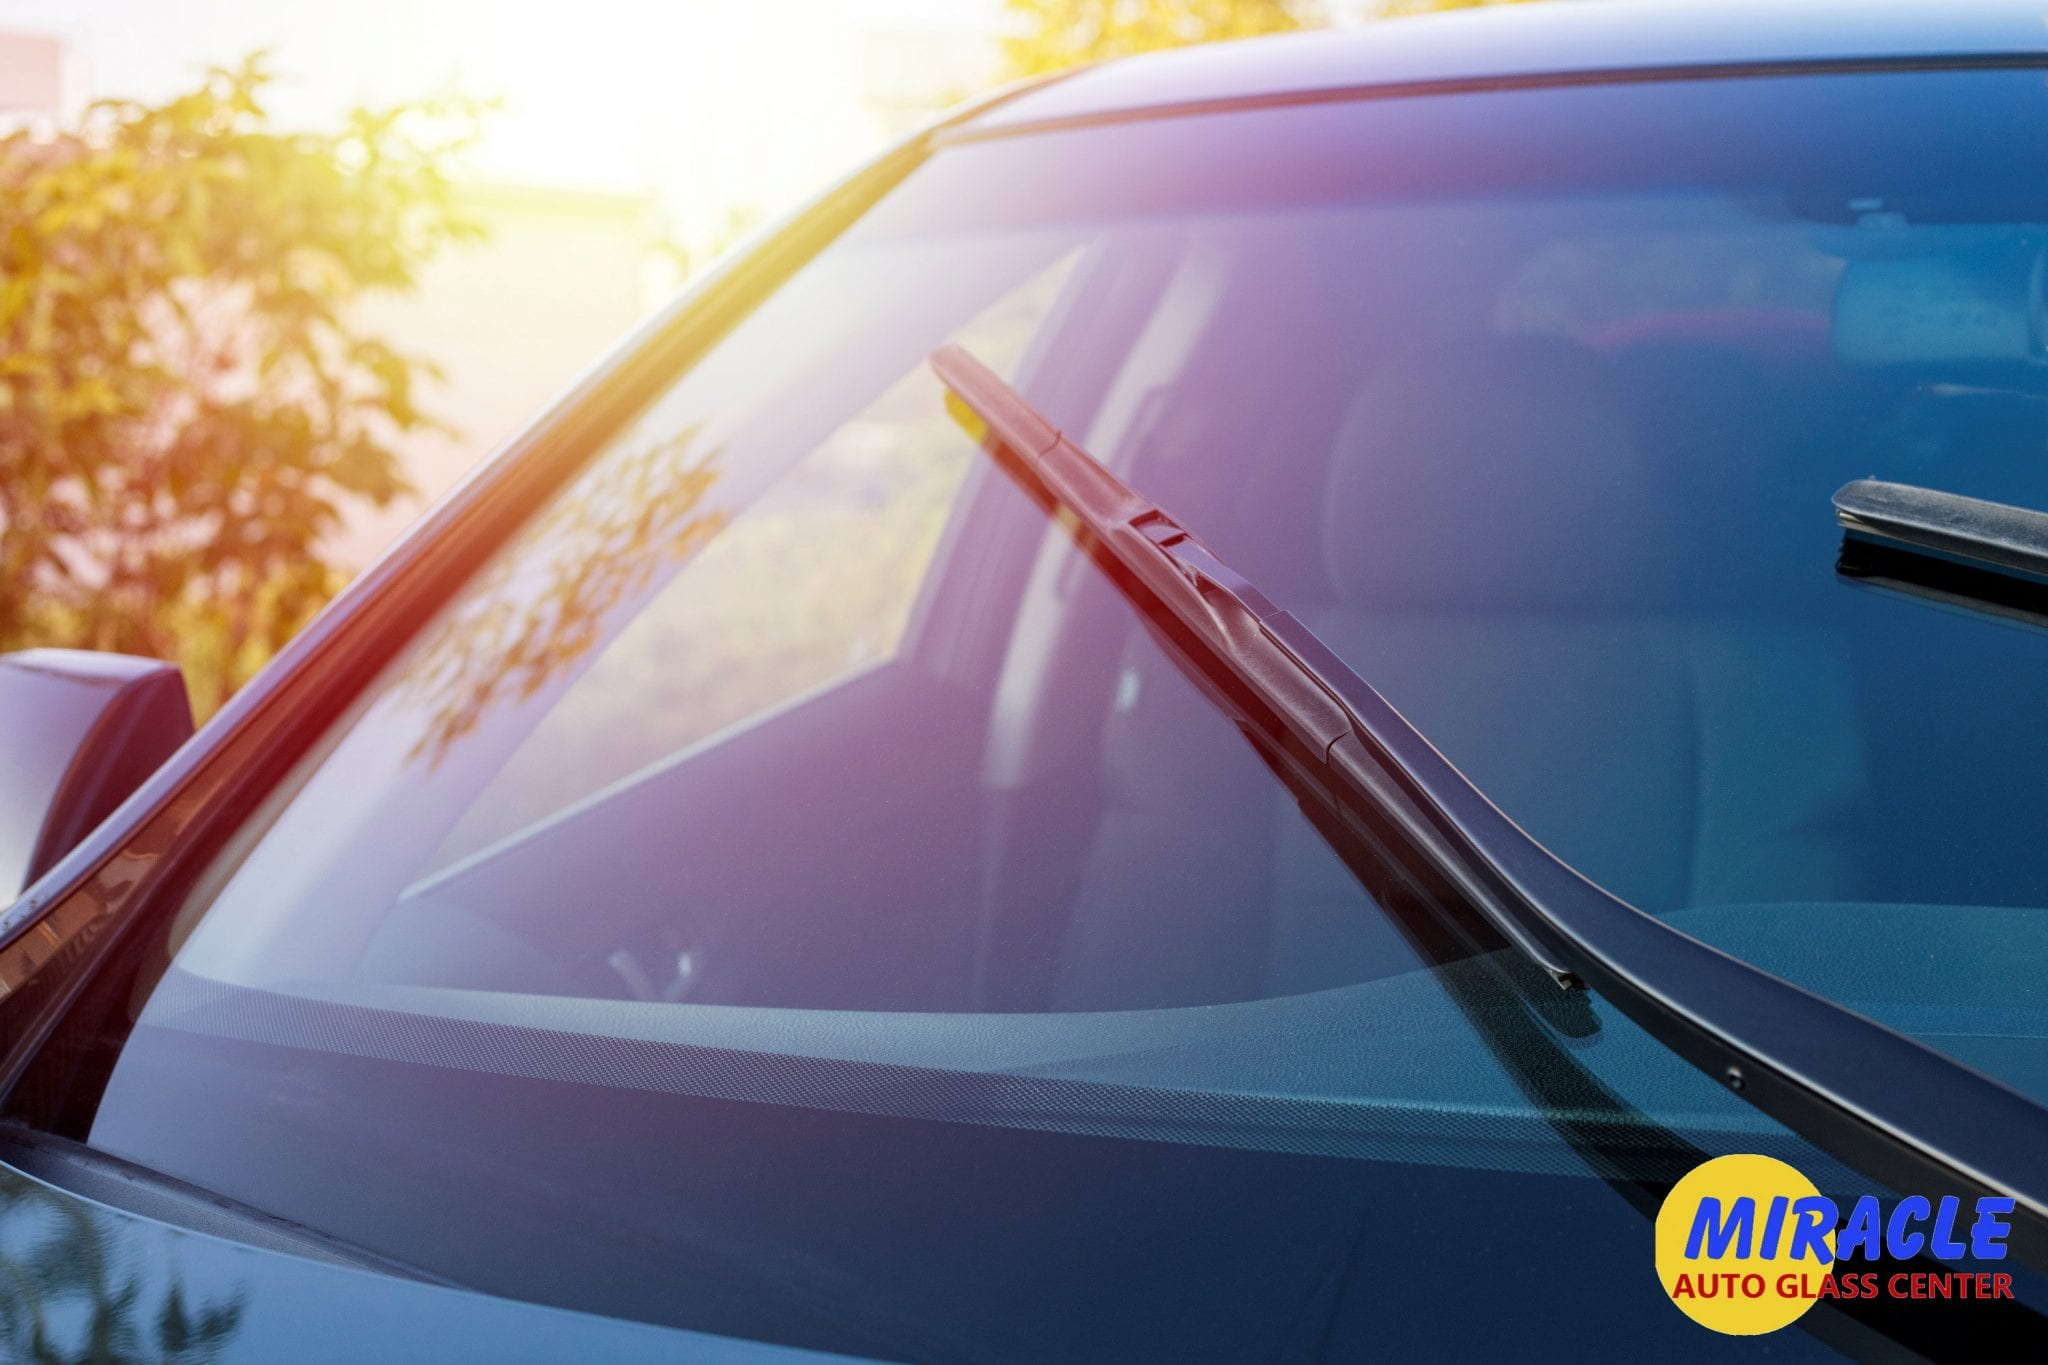 Enjoy A Noise Free Drive With Quality Windshield Repair In San Antonio